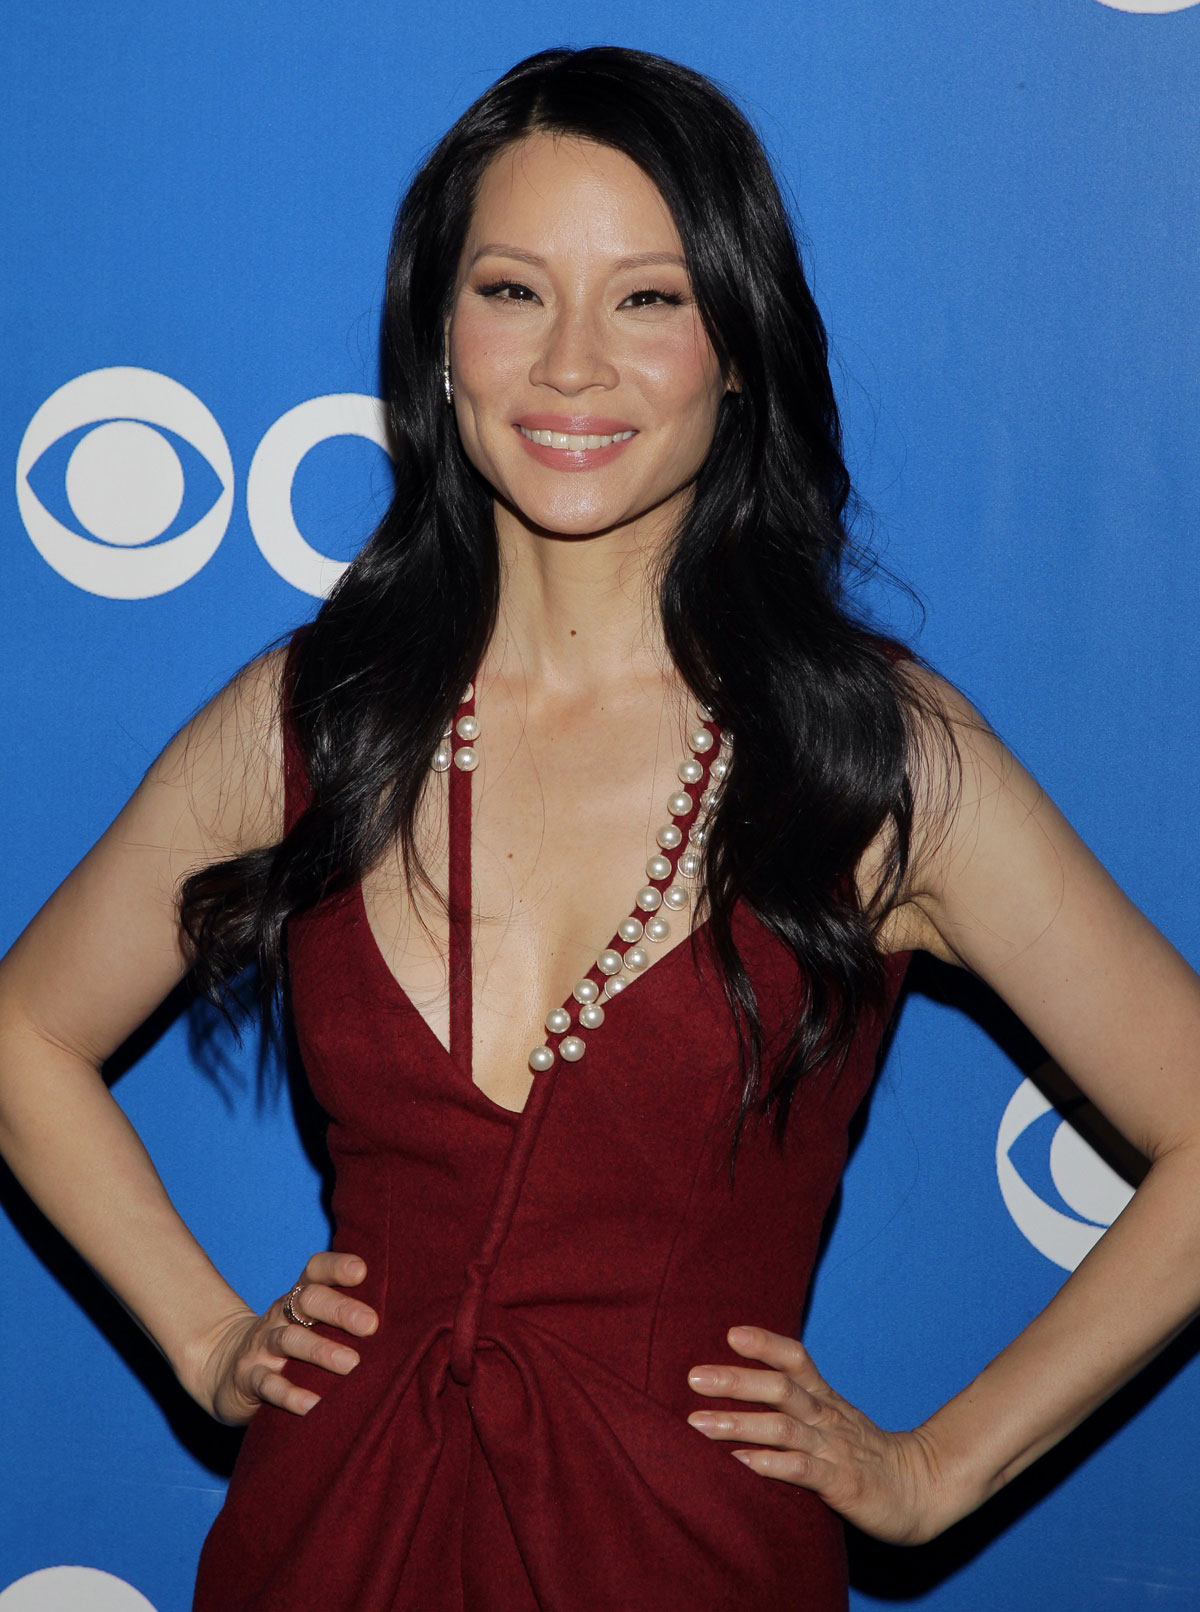 image lucy liu at 2012 cbs upfront in new york movie and tv wiki fandom powered by wikia. Black Bedroom Furniture Sets. Home Design Ideas